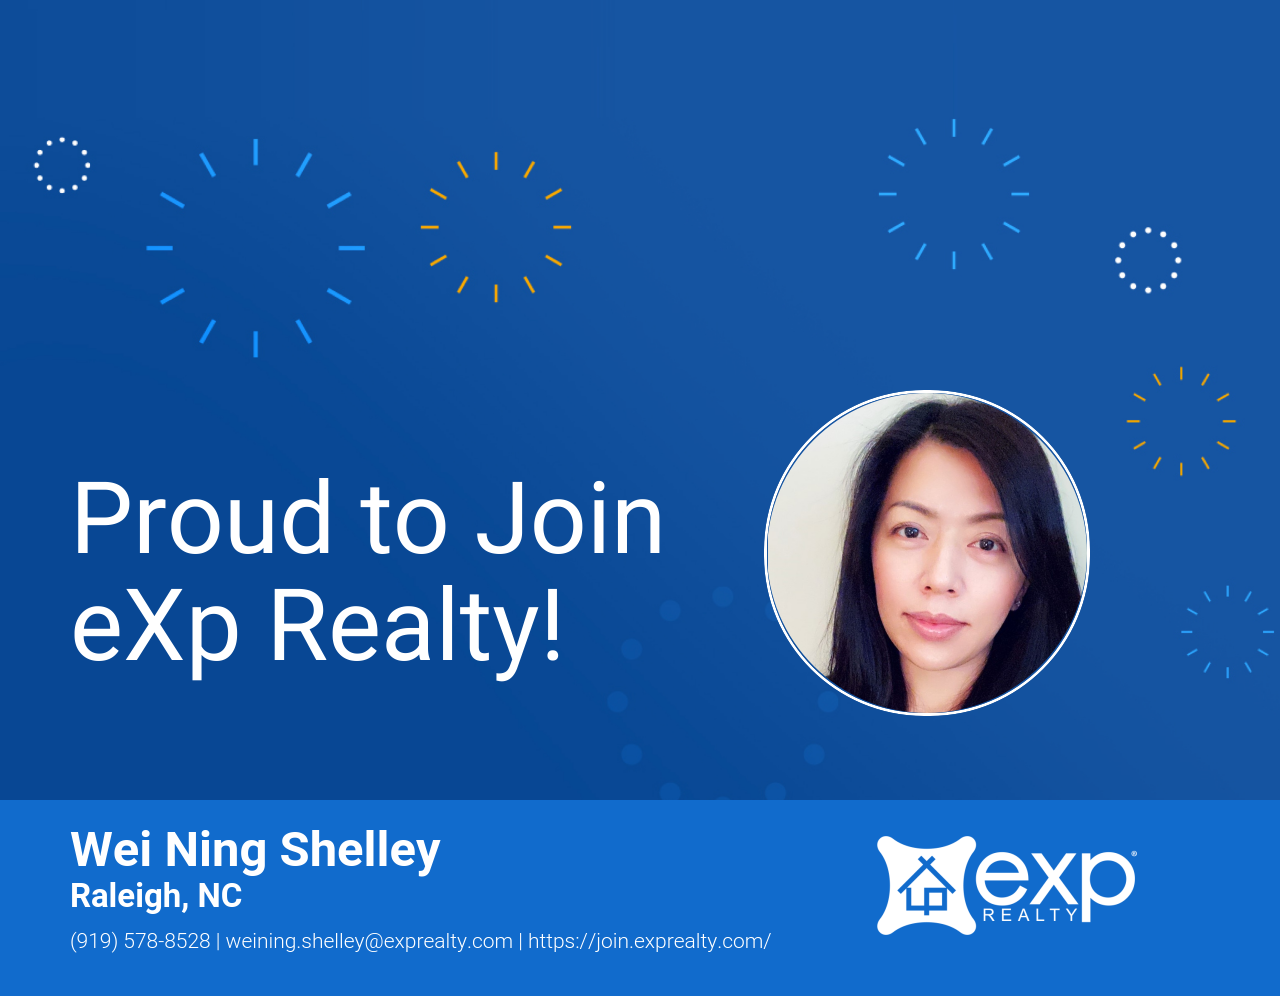 Wei Ning Shelley Joined eXp Realty!